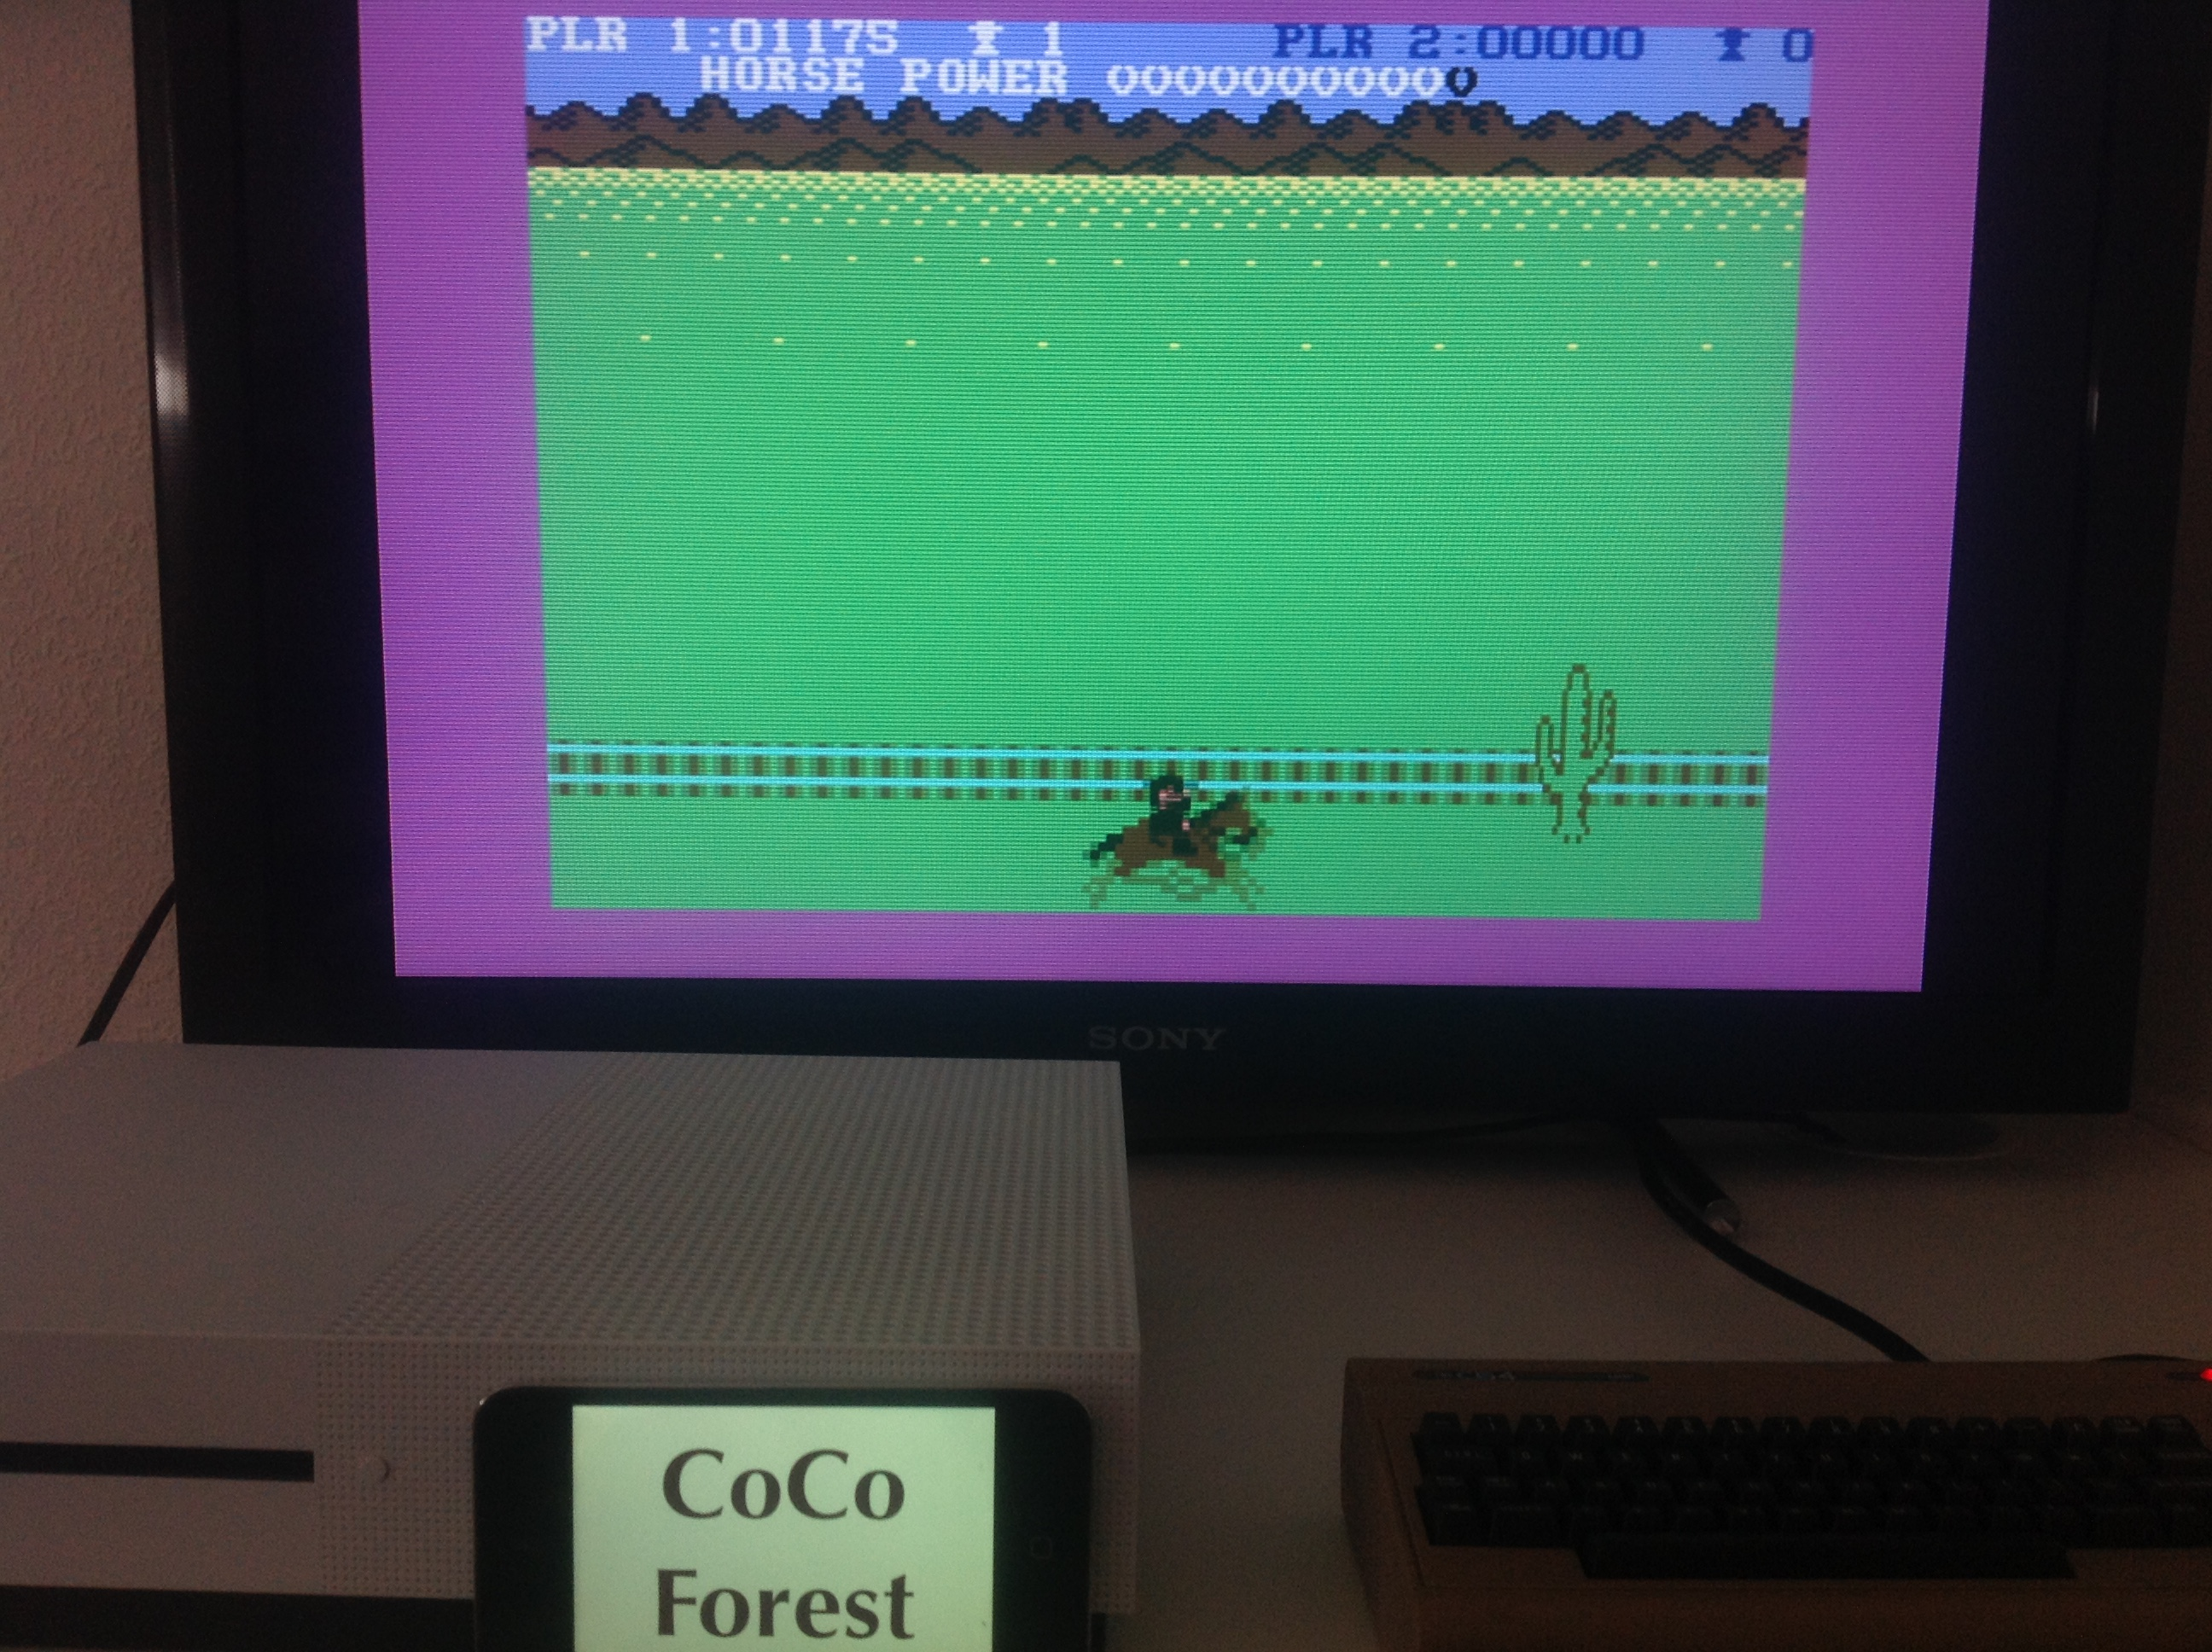 CoCoForest: Train Robbers (Commodore 64 Emulated) 1,175 points on 2018-04-16 10:23:26